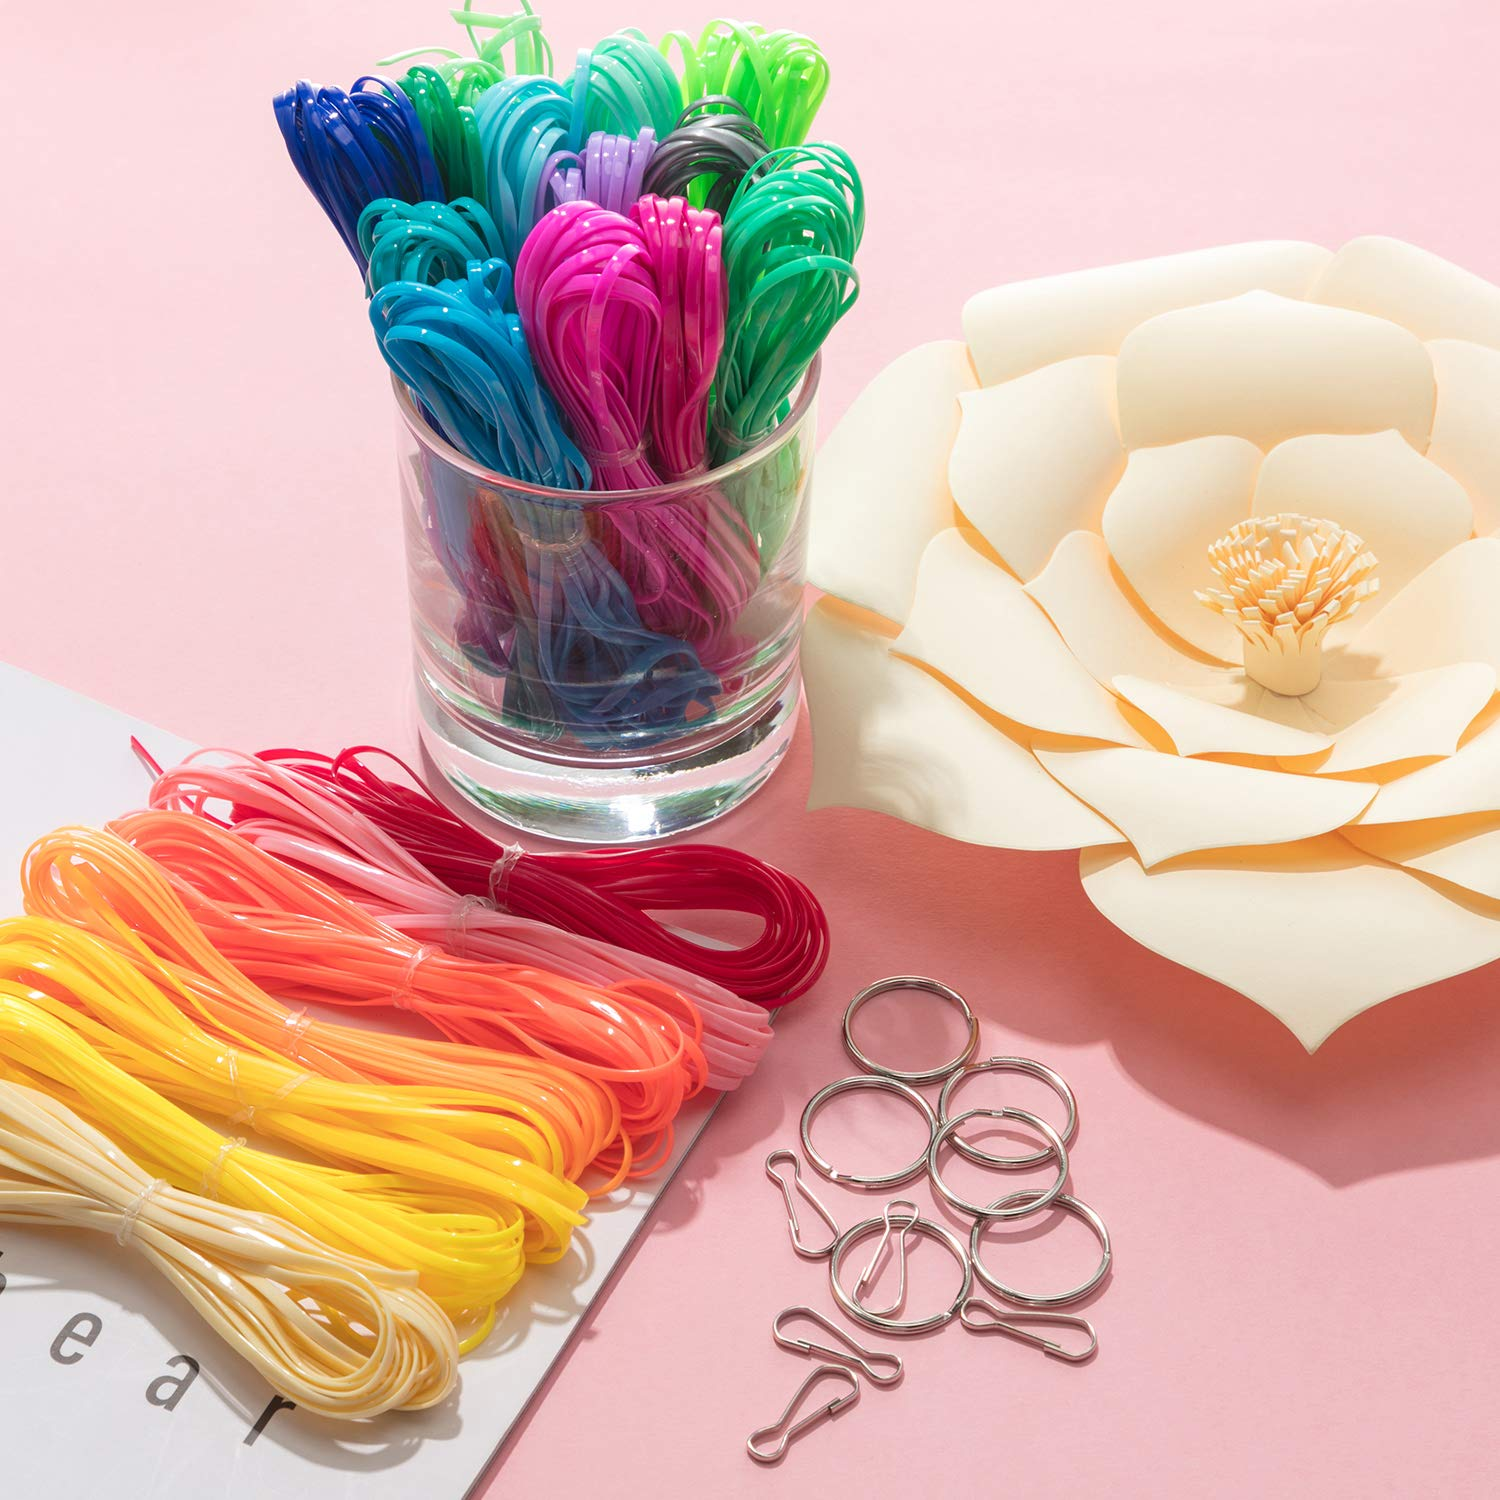 eBoot 20 Colors Plastic Lacing Cord Plastic Gimp Ropes for Bracelet DIY Craft Jewelry Making with 40 Pieces Snap Clip Hooks 328 Feet